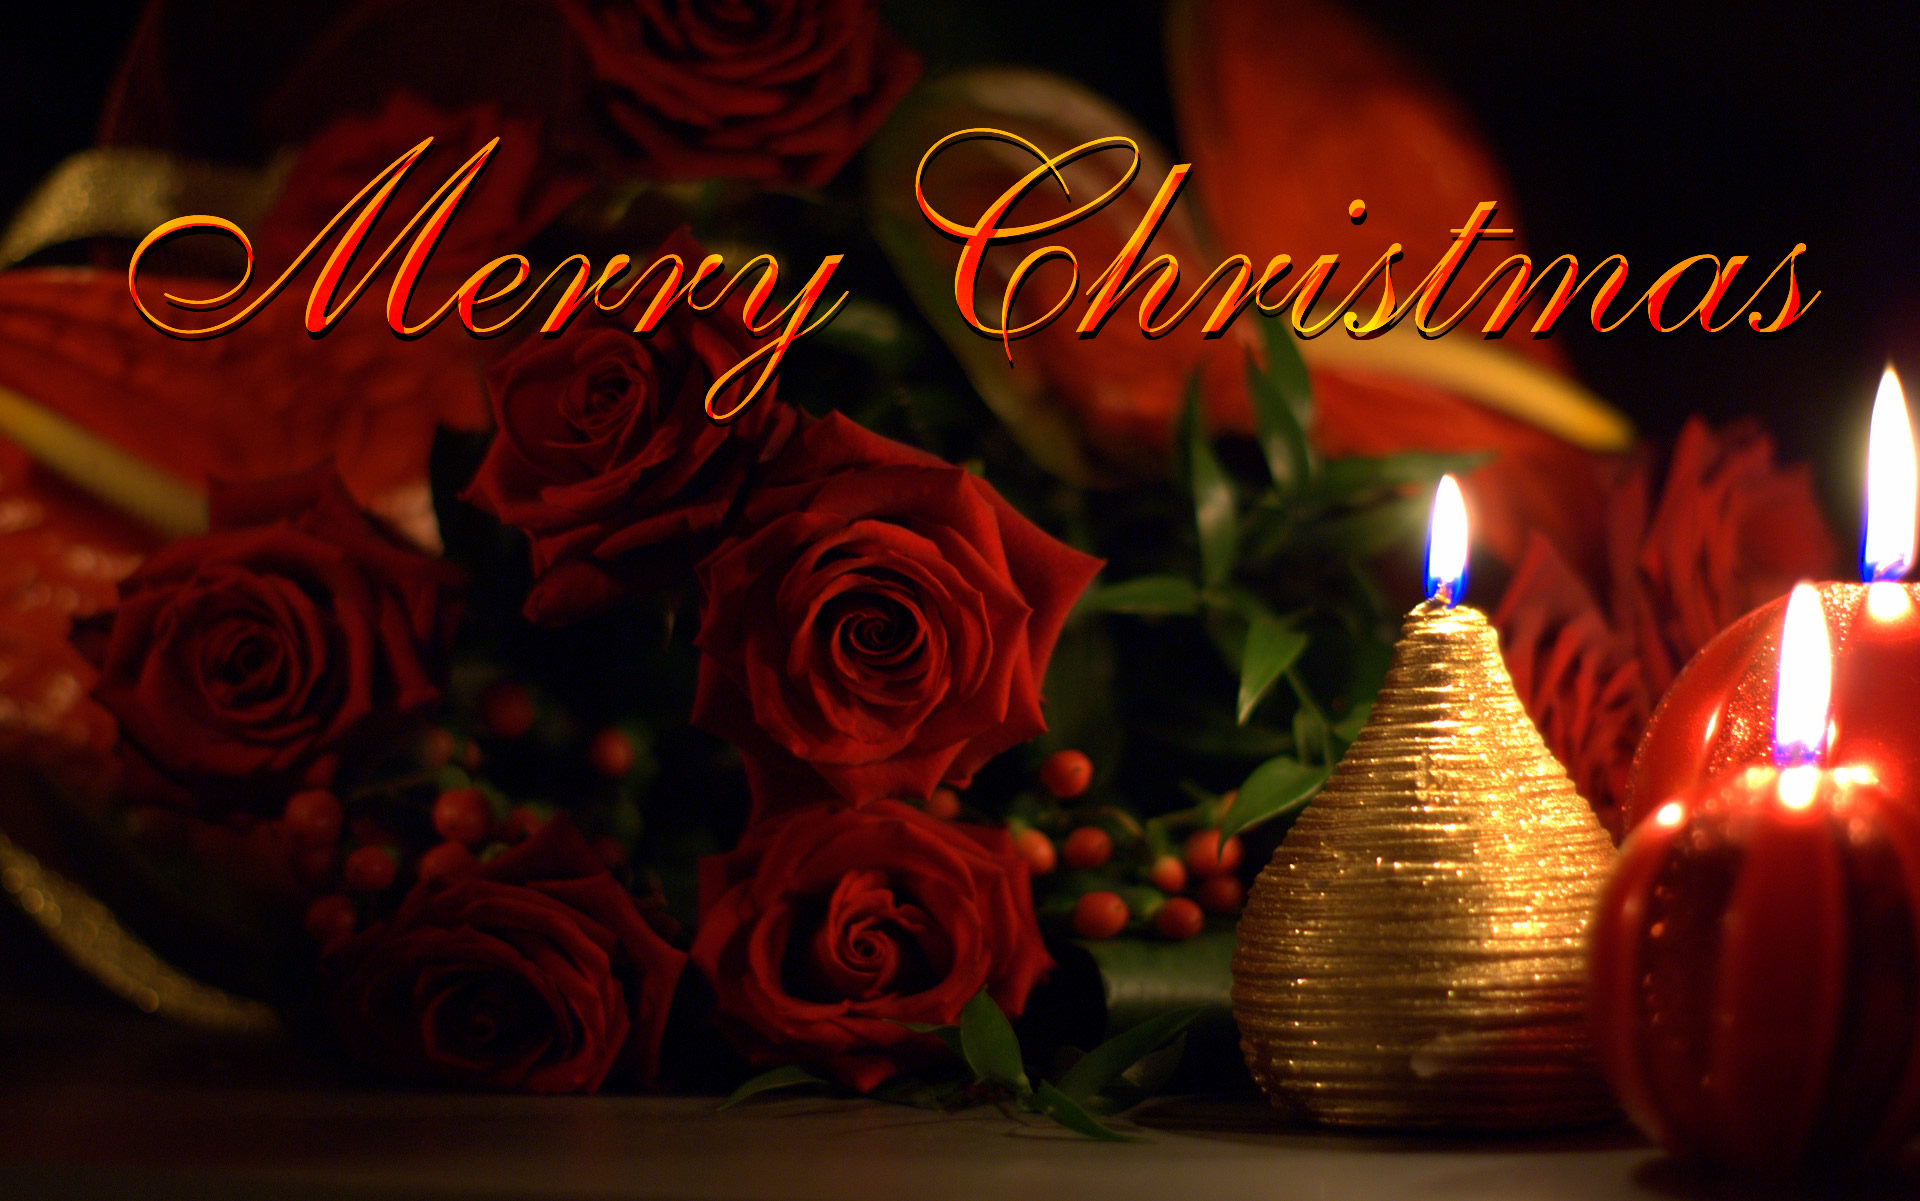 beautiful christmas photo images with rose